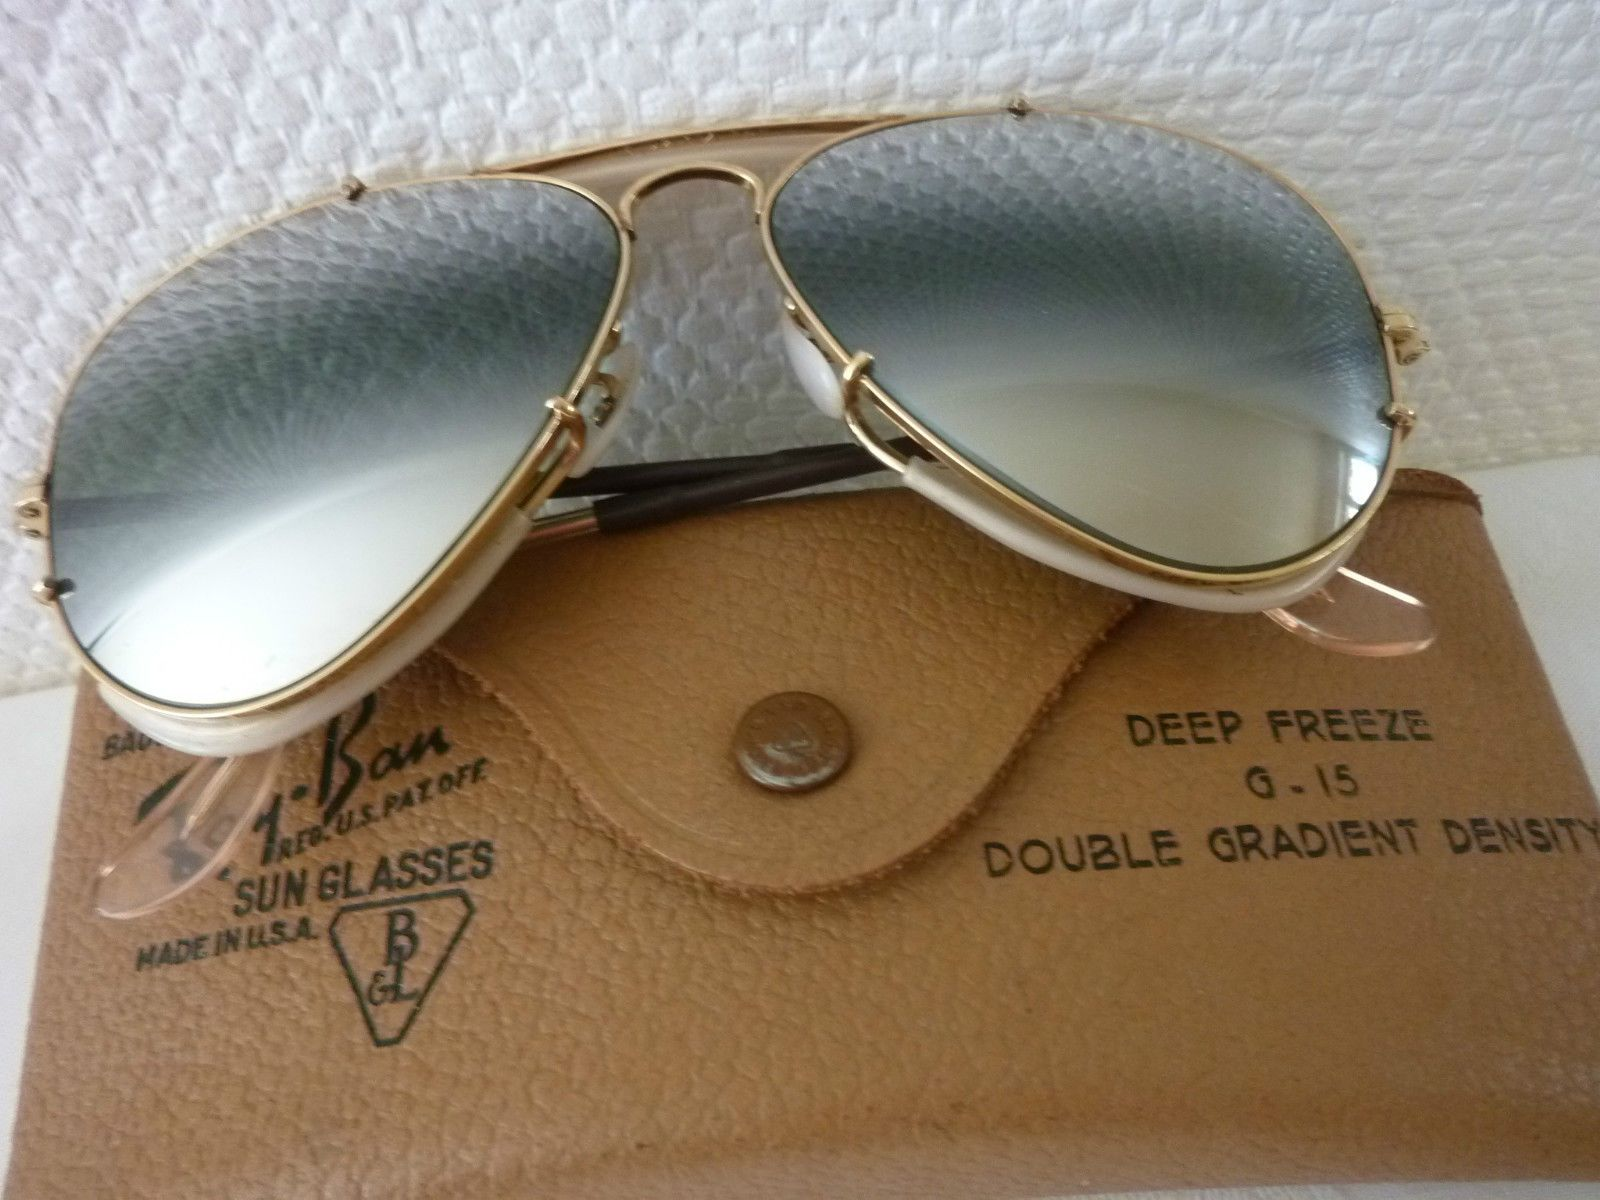 Ray ban sunglasses new design - Ray Ban Sunglasses Men S Preowned Vintage 1950 Deep Freeze Double Gradient Density Bausch